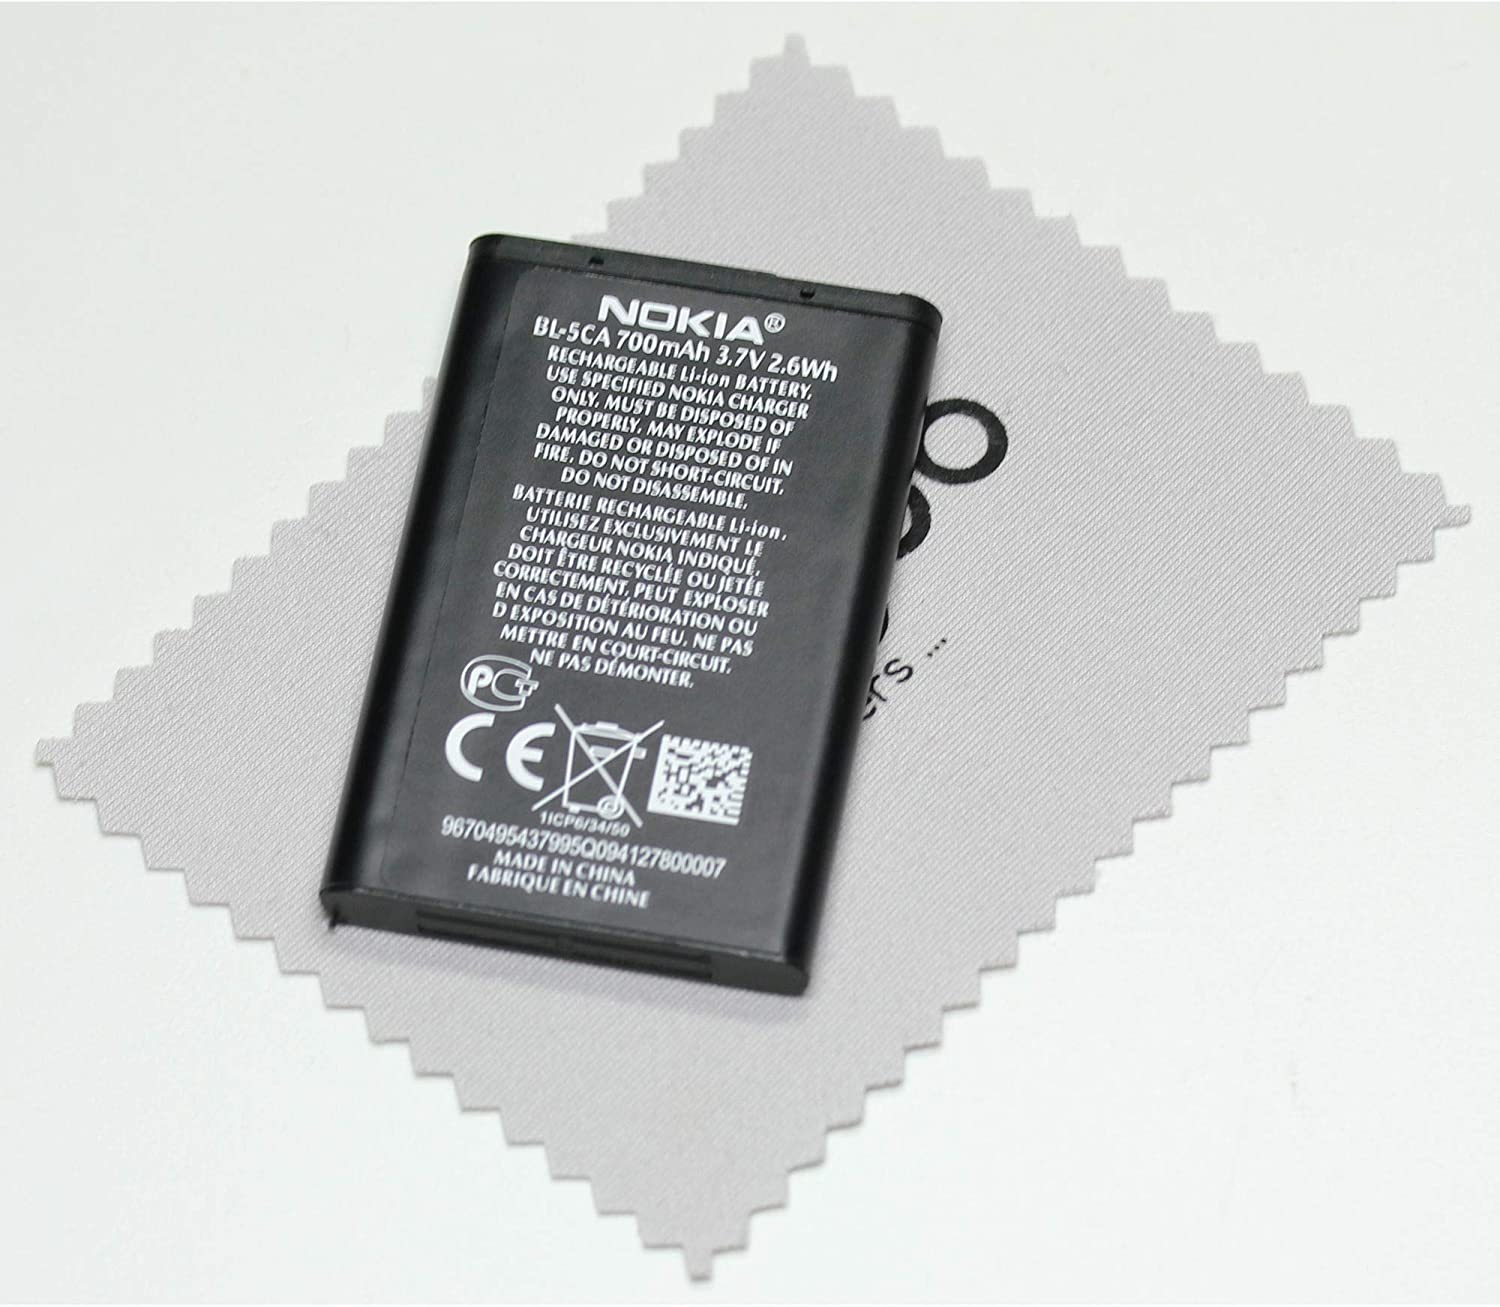 1200 1680C Liion mungoo screen cleaning cloth 1112 1111 1208 Battery for Nokia Genuine BL-5CA for Nokia 1110 1209